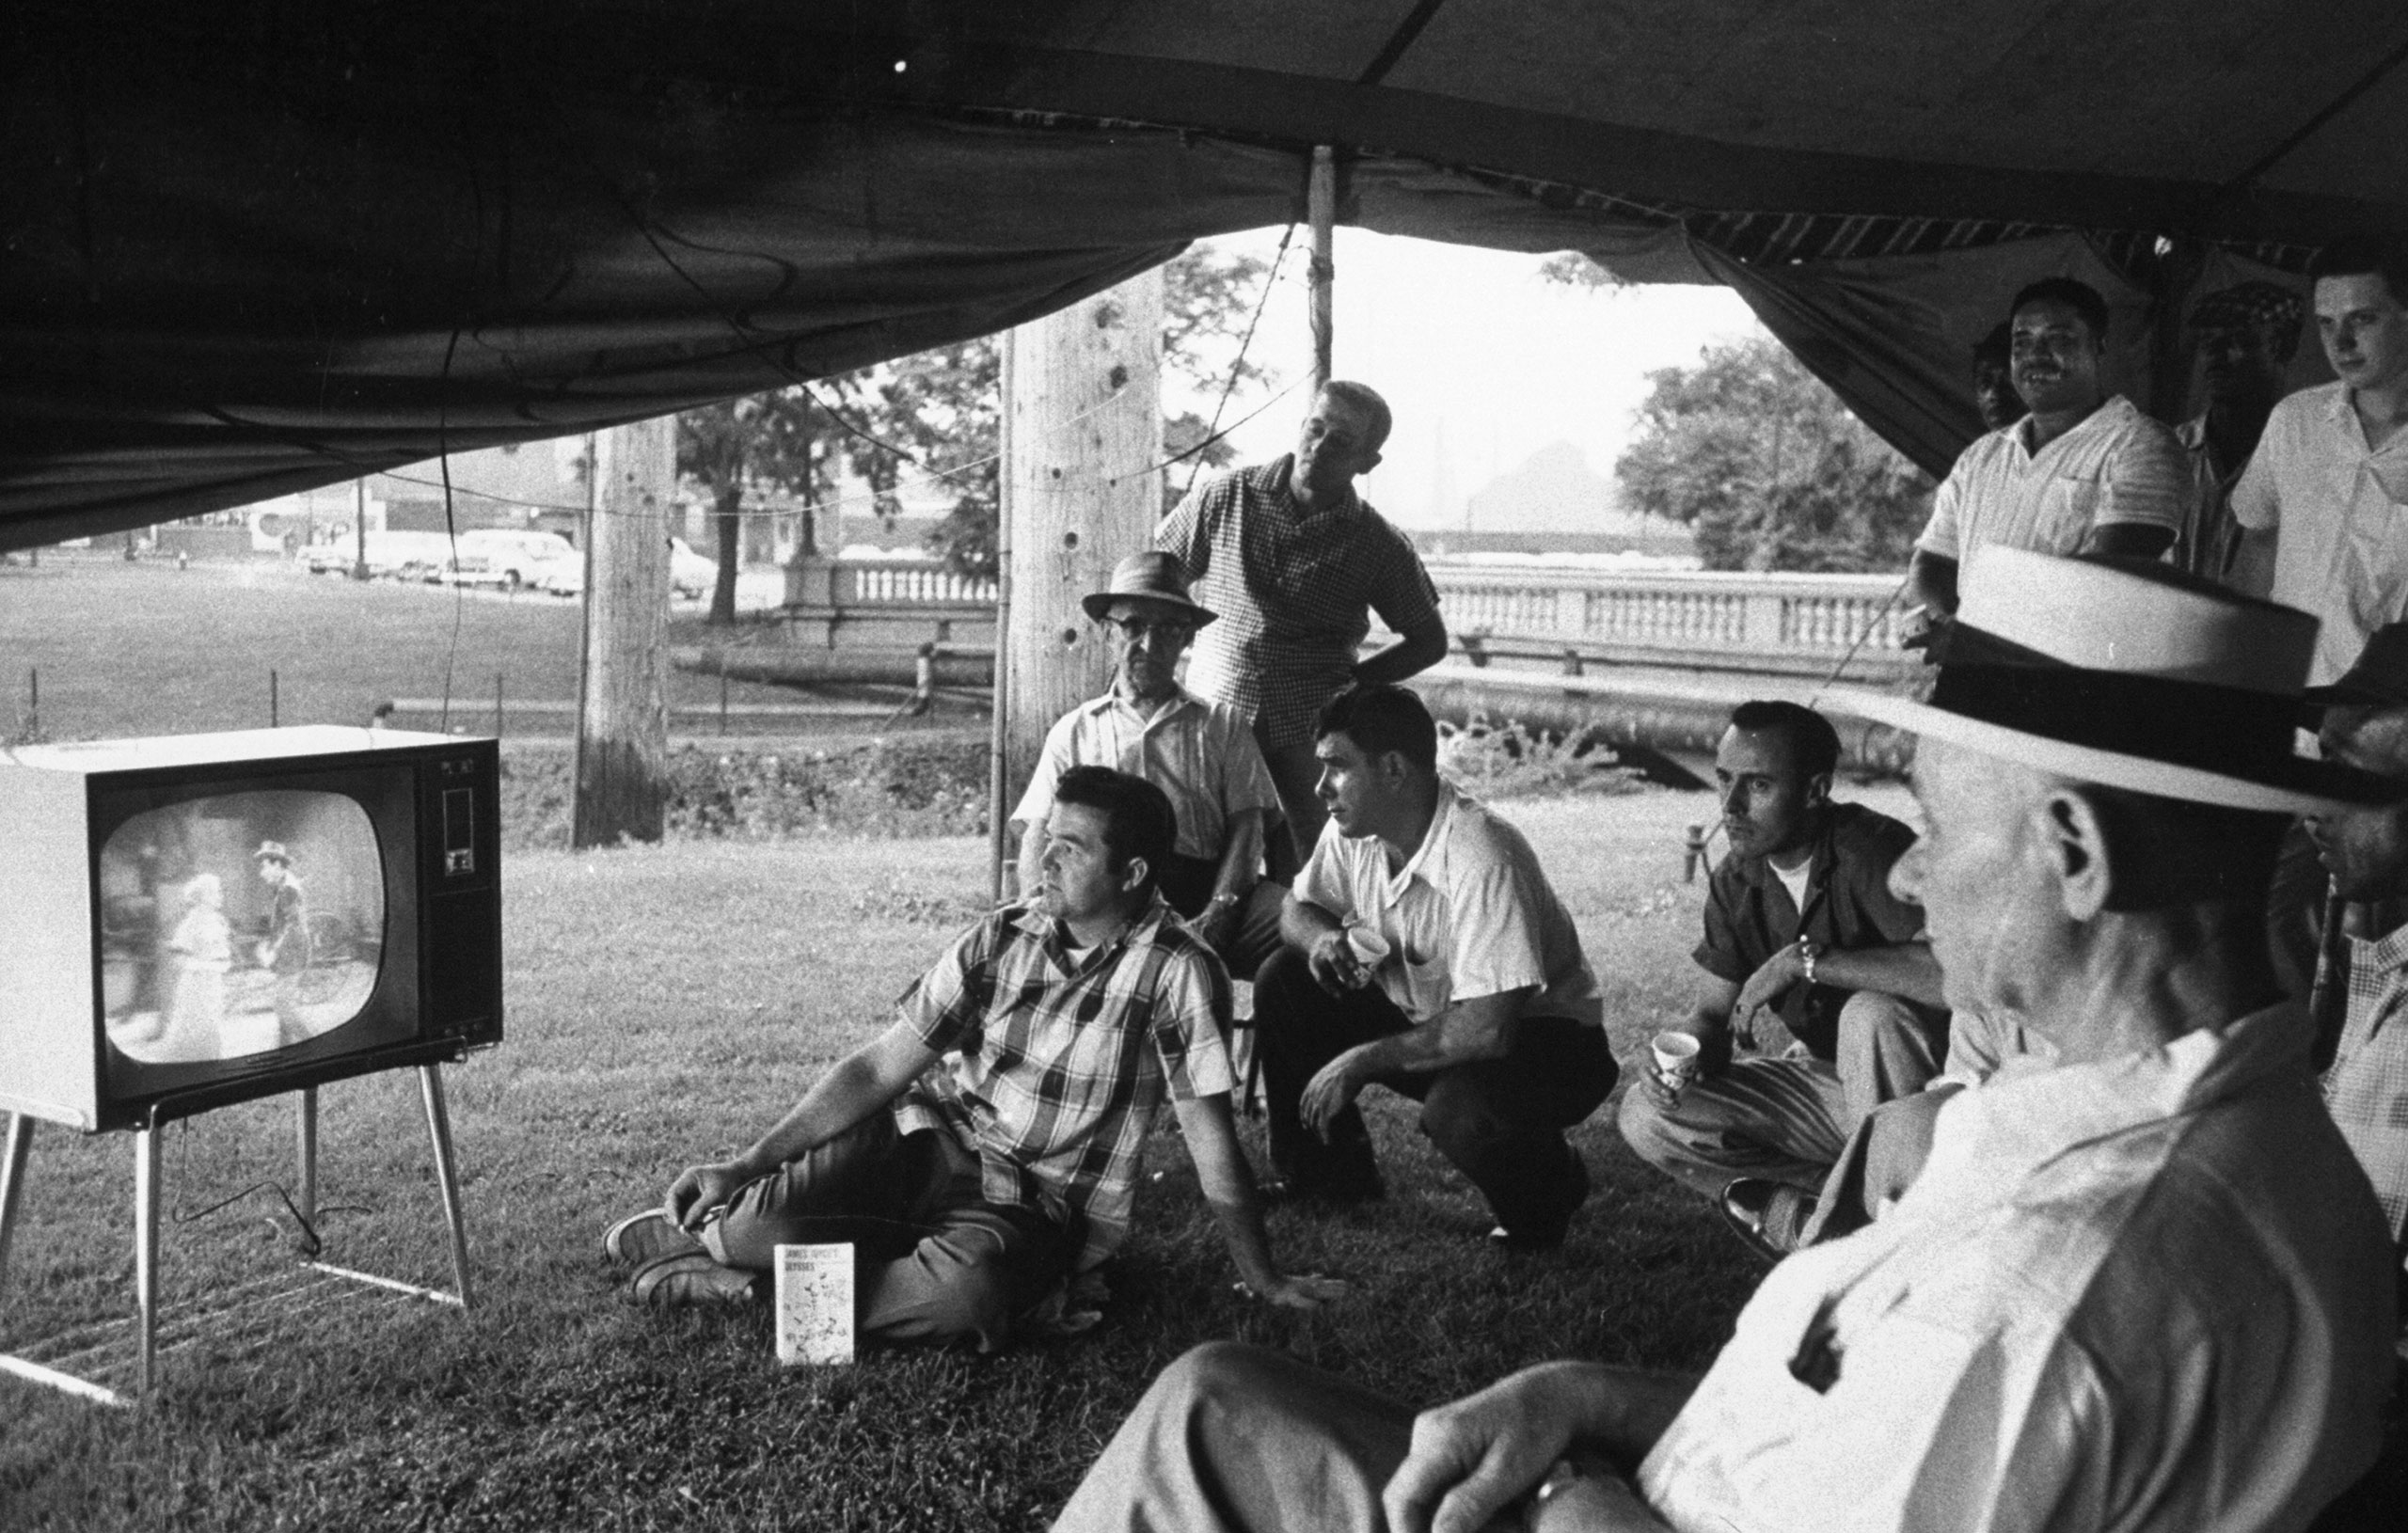 Picketing workers watch TV in a tent outside the gates of a U.S. Steel plant in Gary, Indiana, during a strike in 1959.